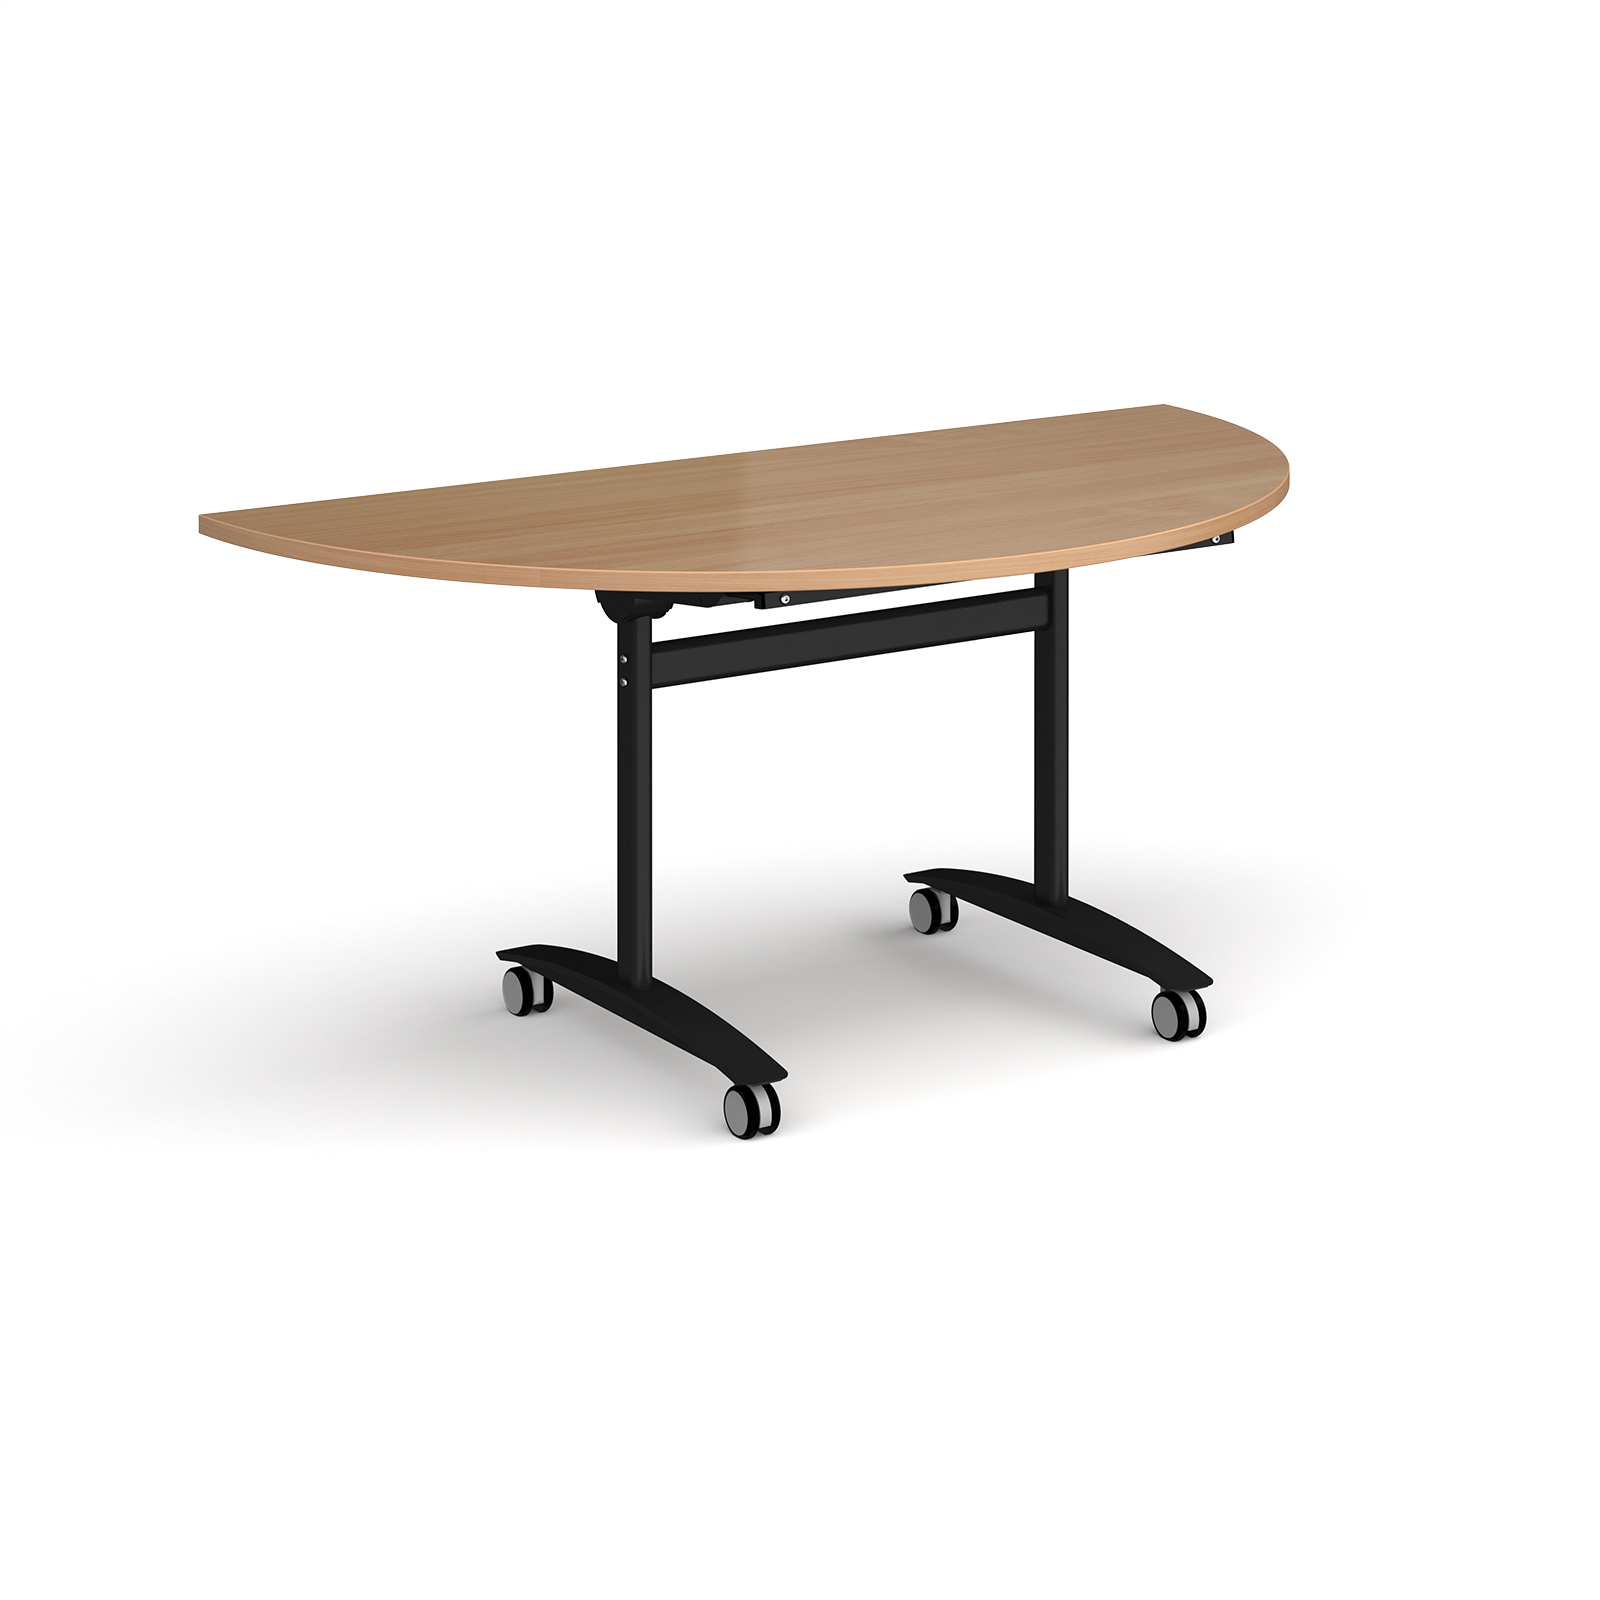 Boardroom / Meeting Semi circular deluxe fliptop meeting table